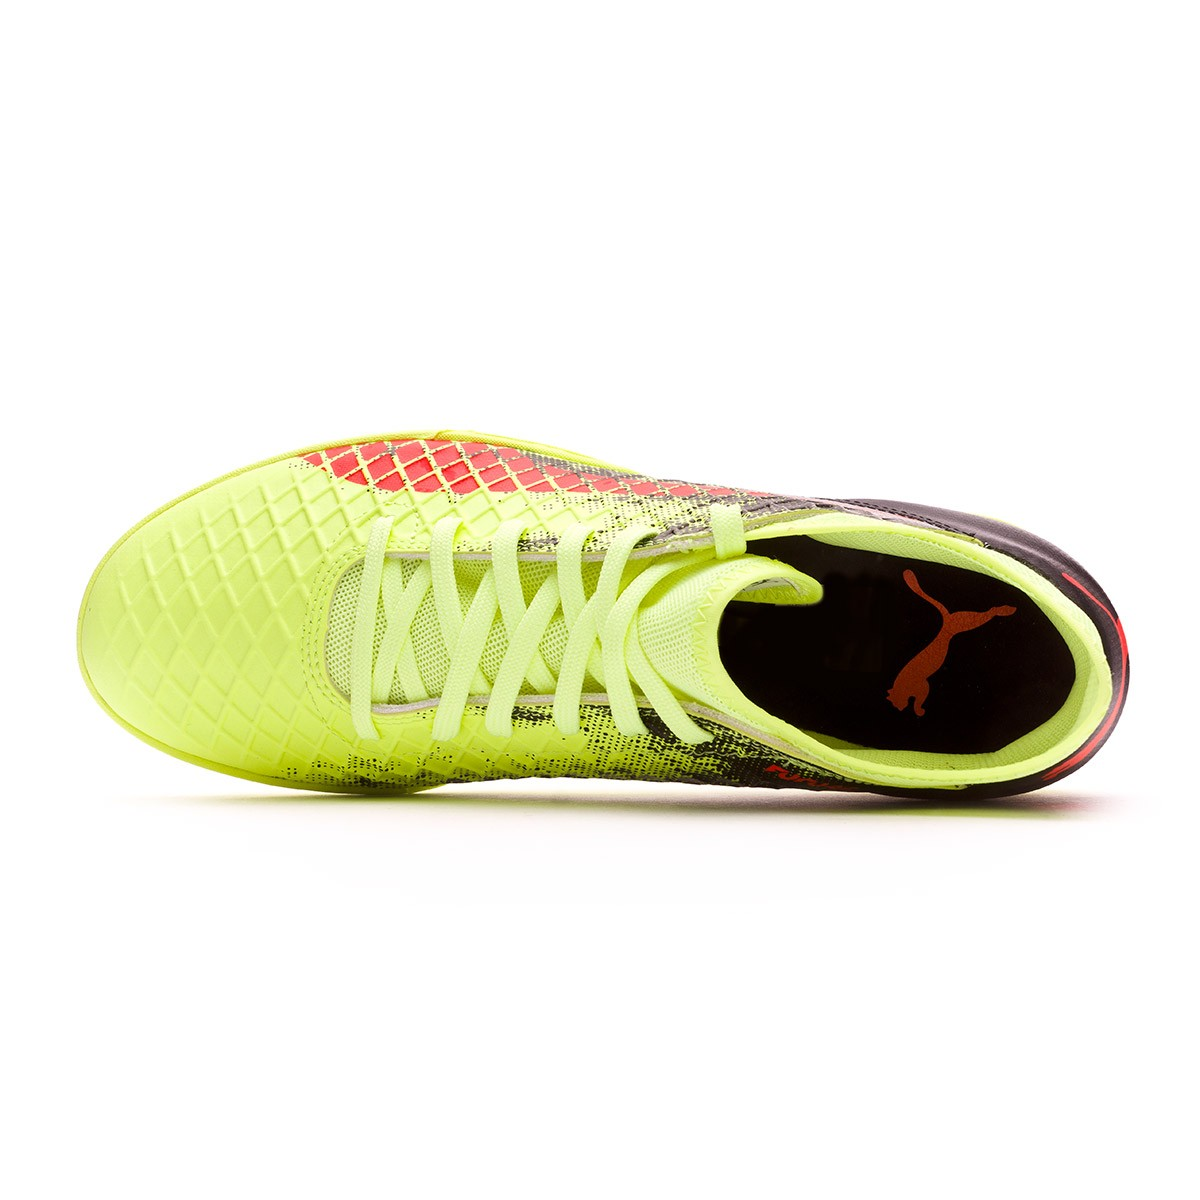 Football Boot Puma Future 18.4 Turf Fizzy Yellow-Red Blast-Puma Black -  Football store Fútbol Emotion 673e61e67e